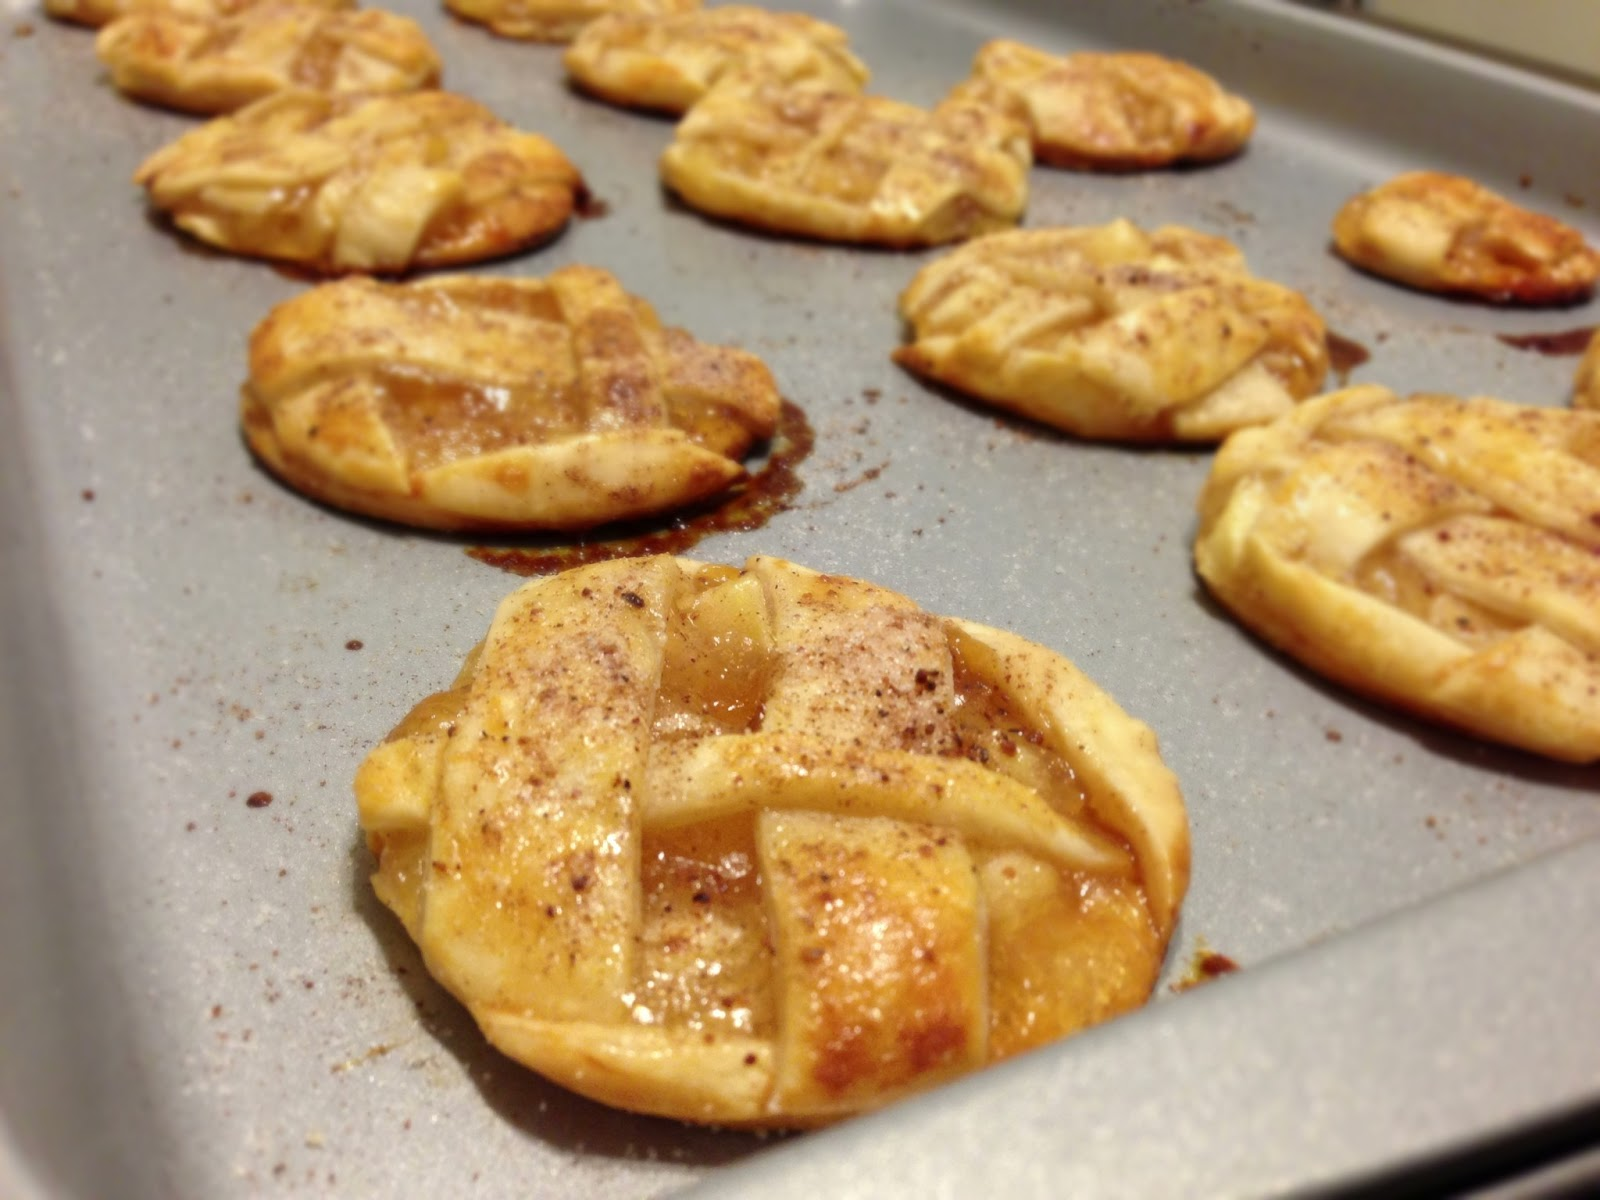 Chronicles of a Foodie: Apple Pie Cookies